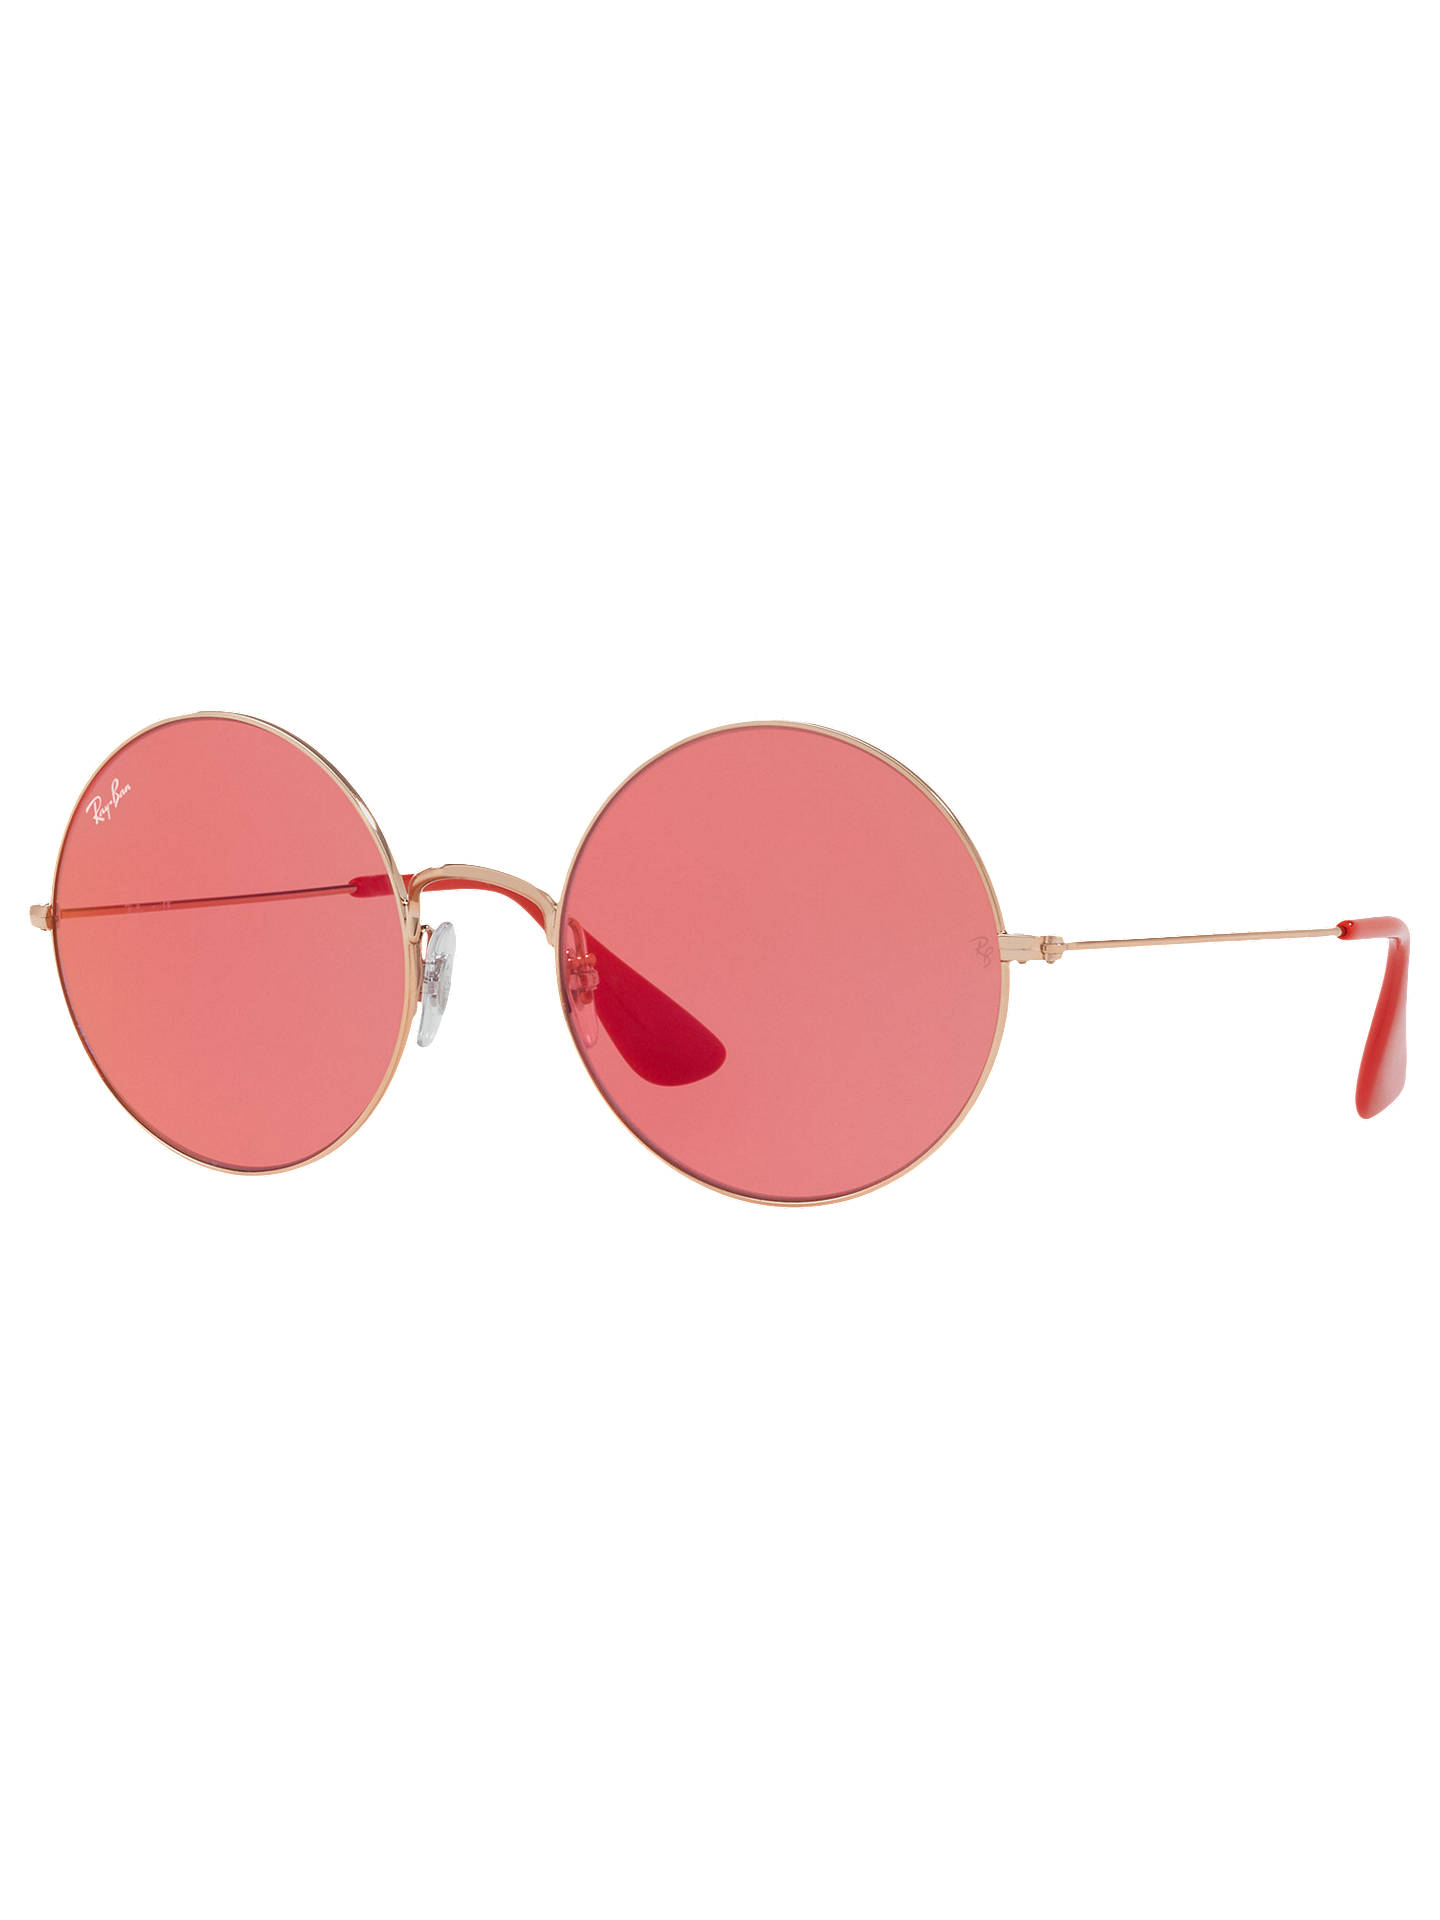 6f6f1d488b4e4 Ray-Ban RB3592 Ja-Jo Round Sunglasses at John Lewis   Partners